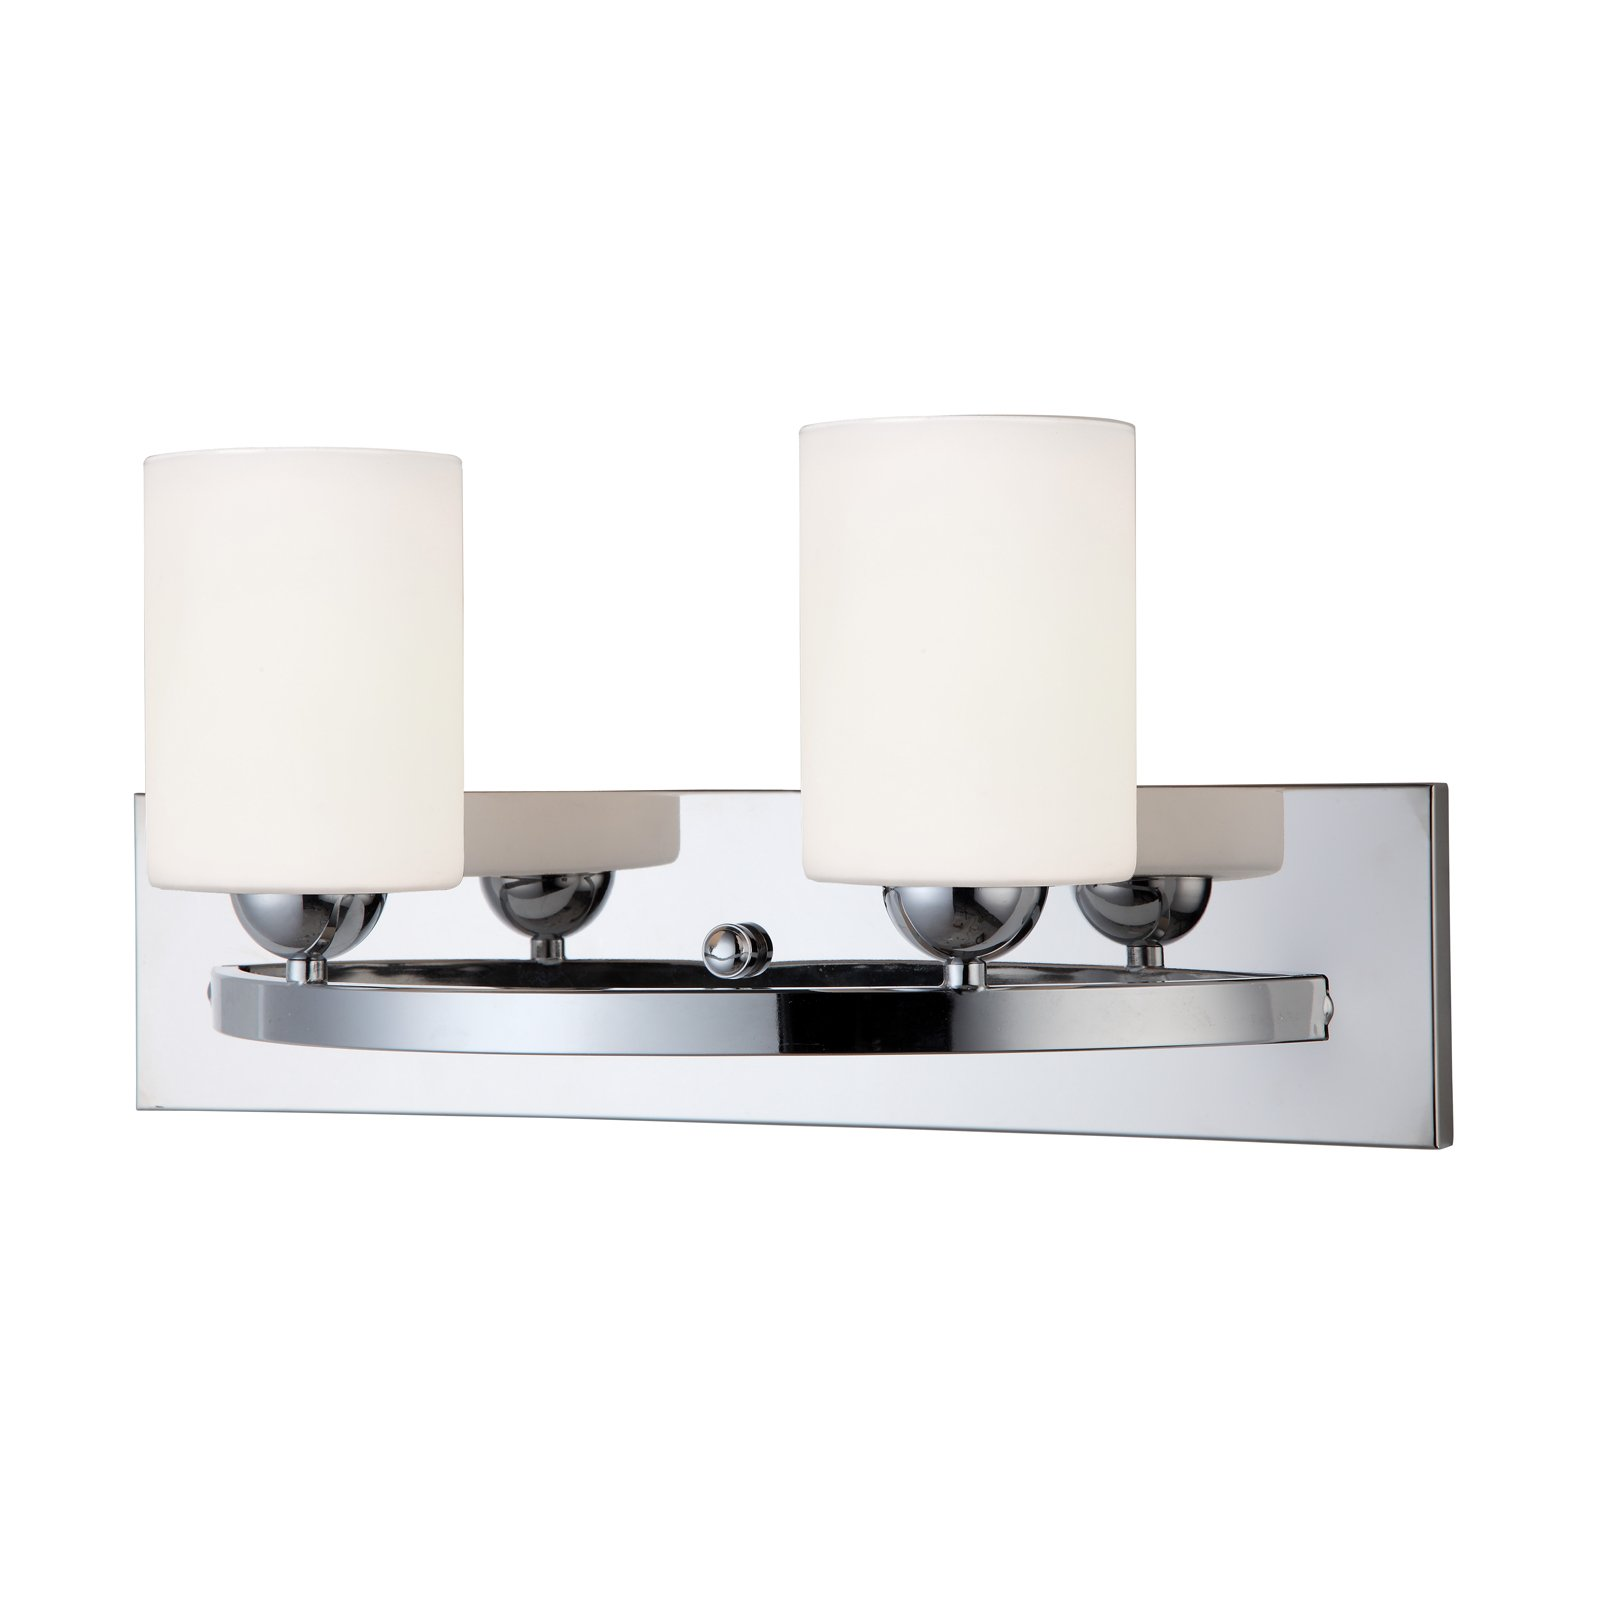 Chrome 2 Globe Vanity Bath Light Bar Interior Lighting Fixture by HowPlumb (Image #1)